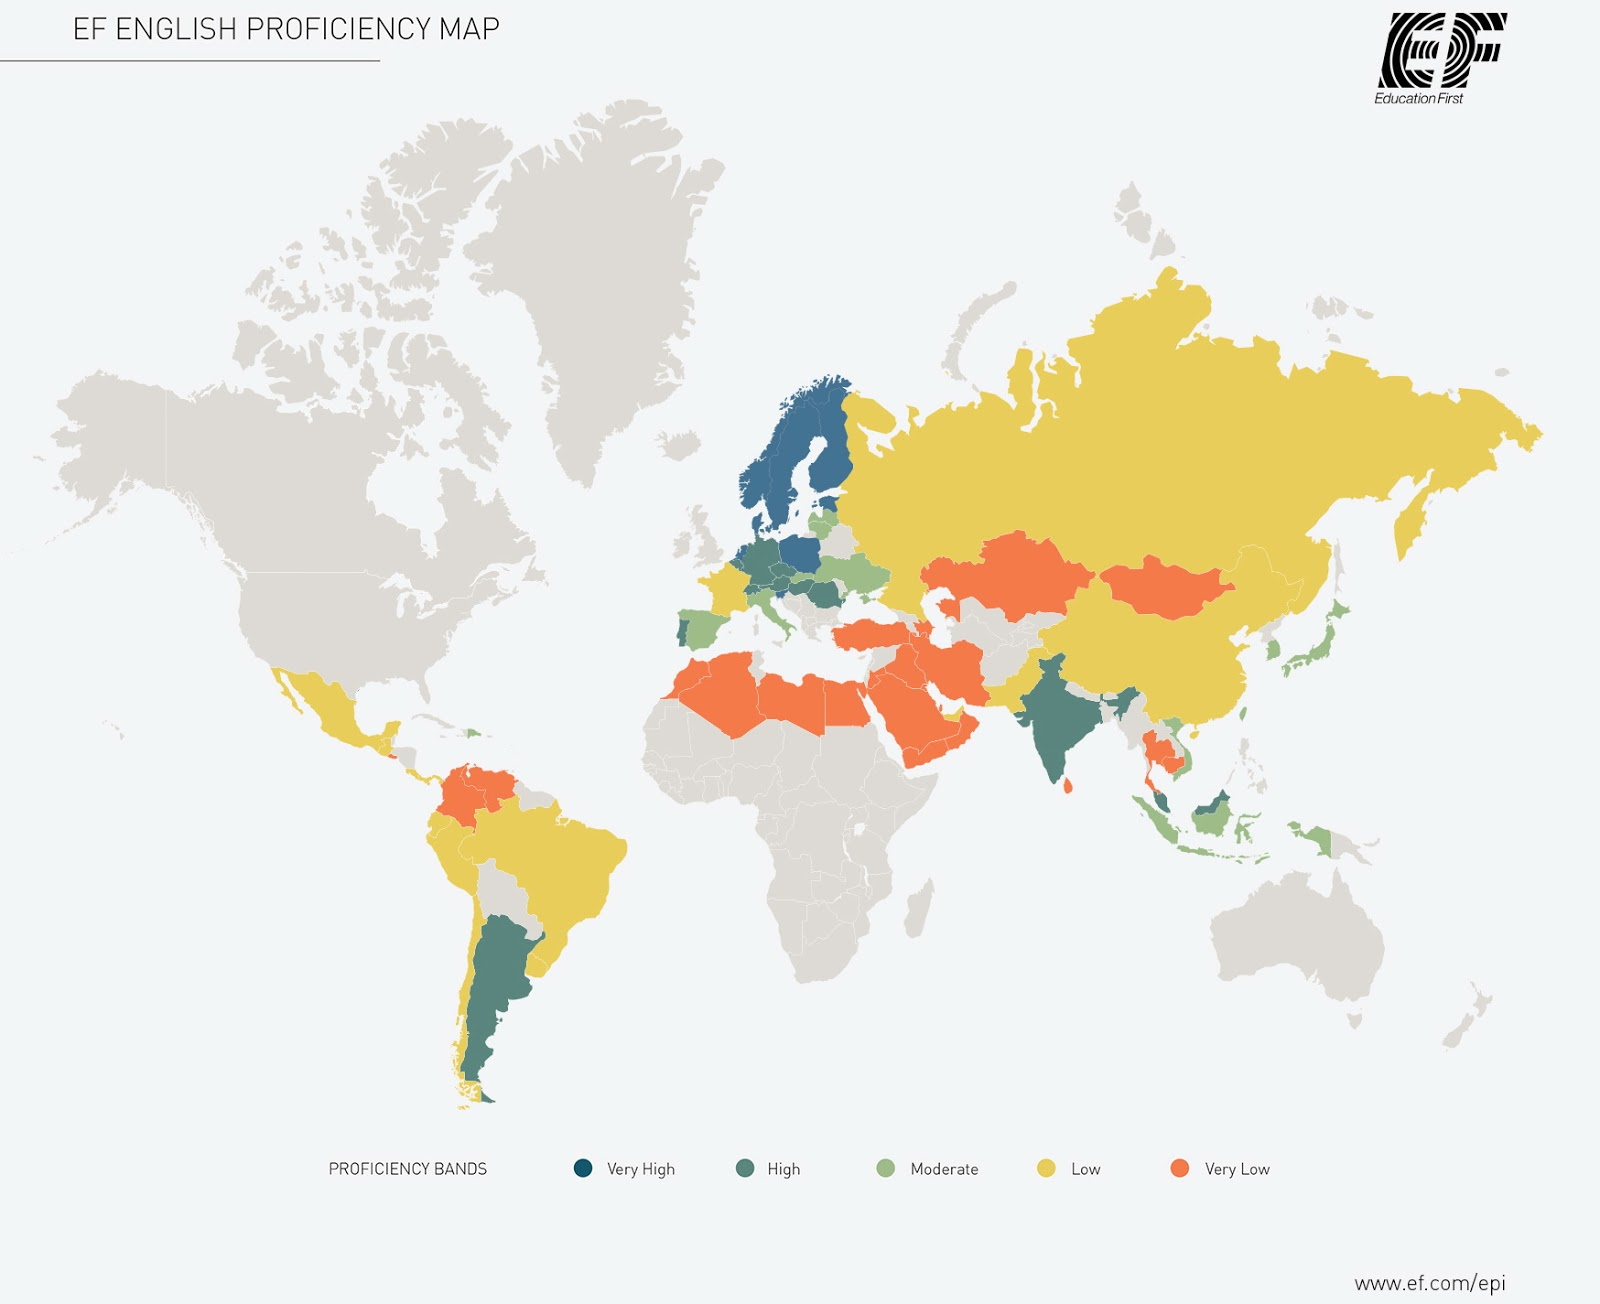 World's English Proficiency Index (2015)